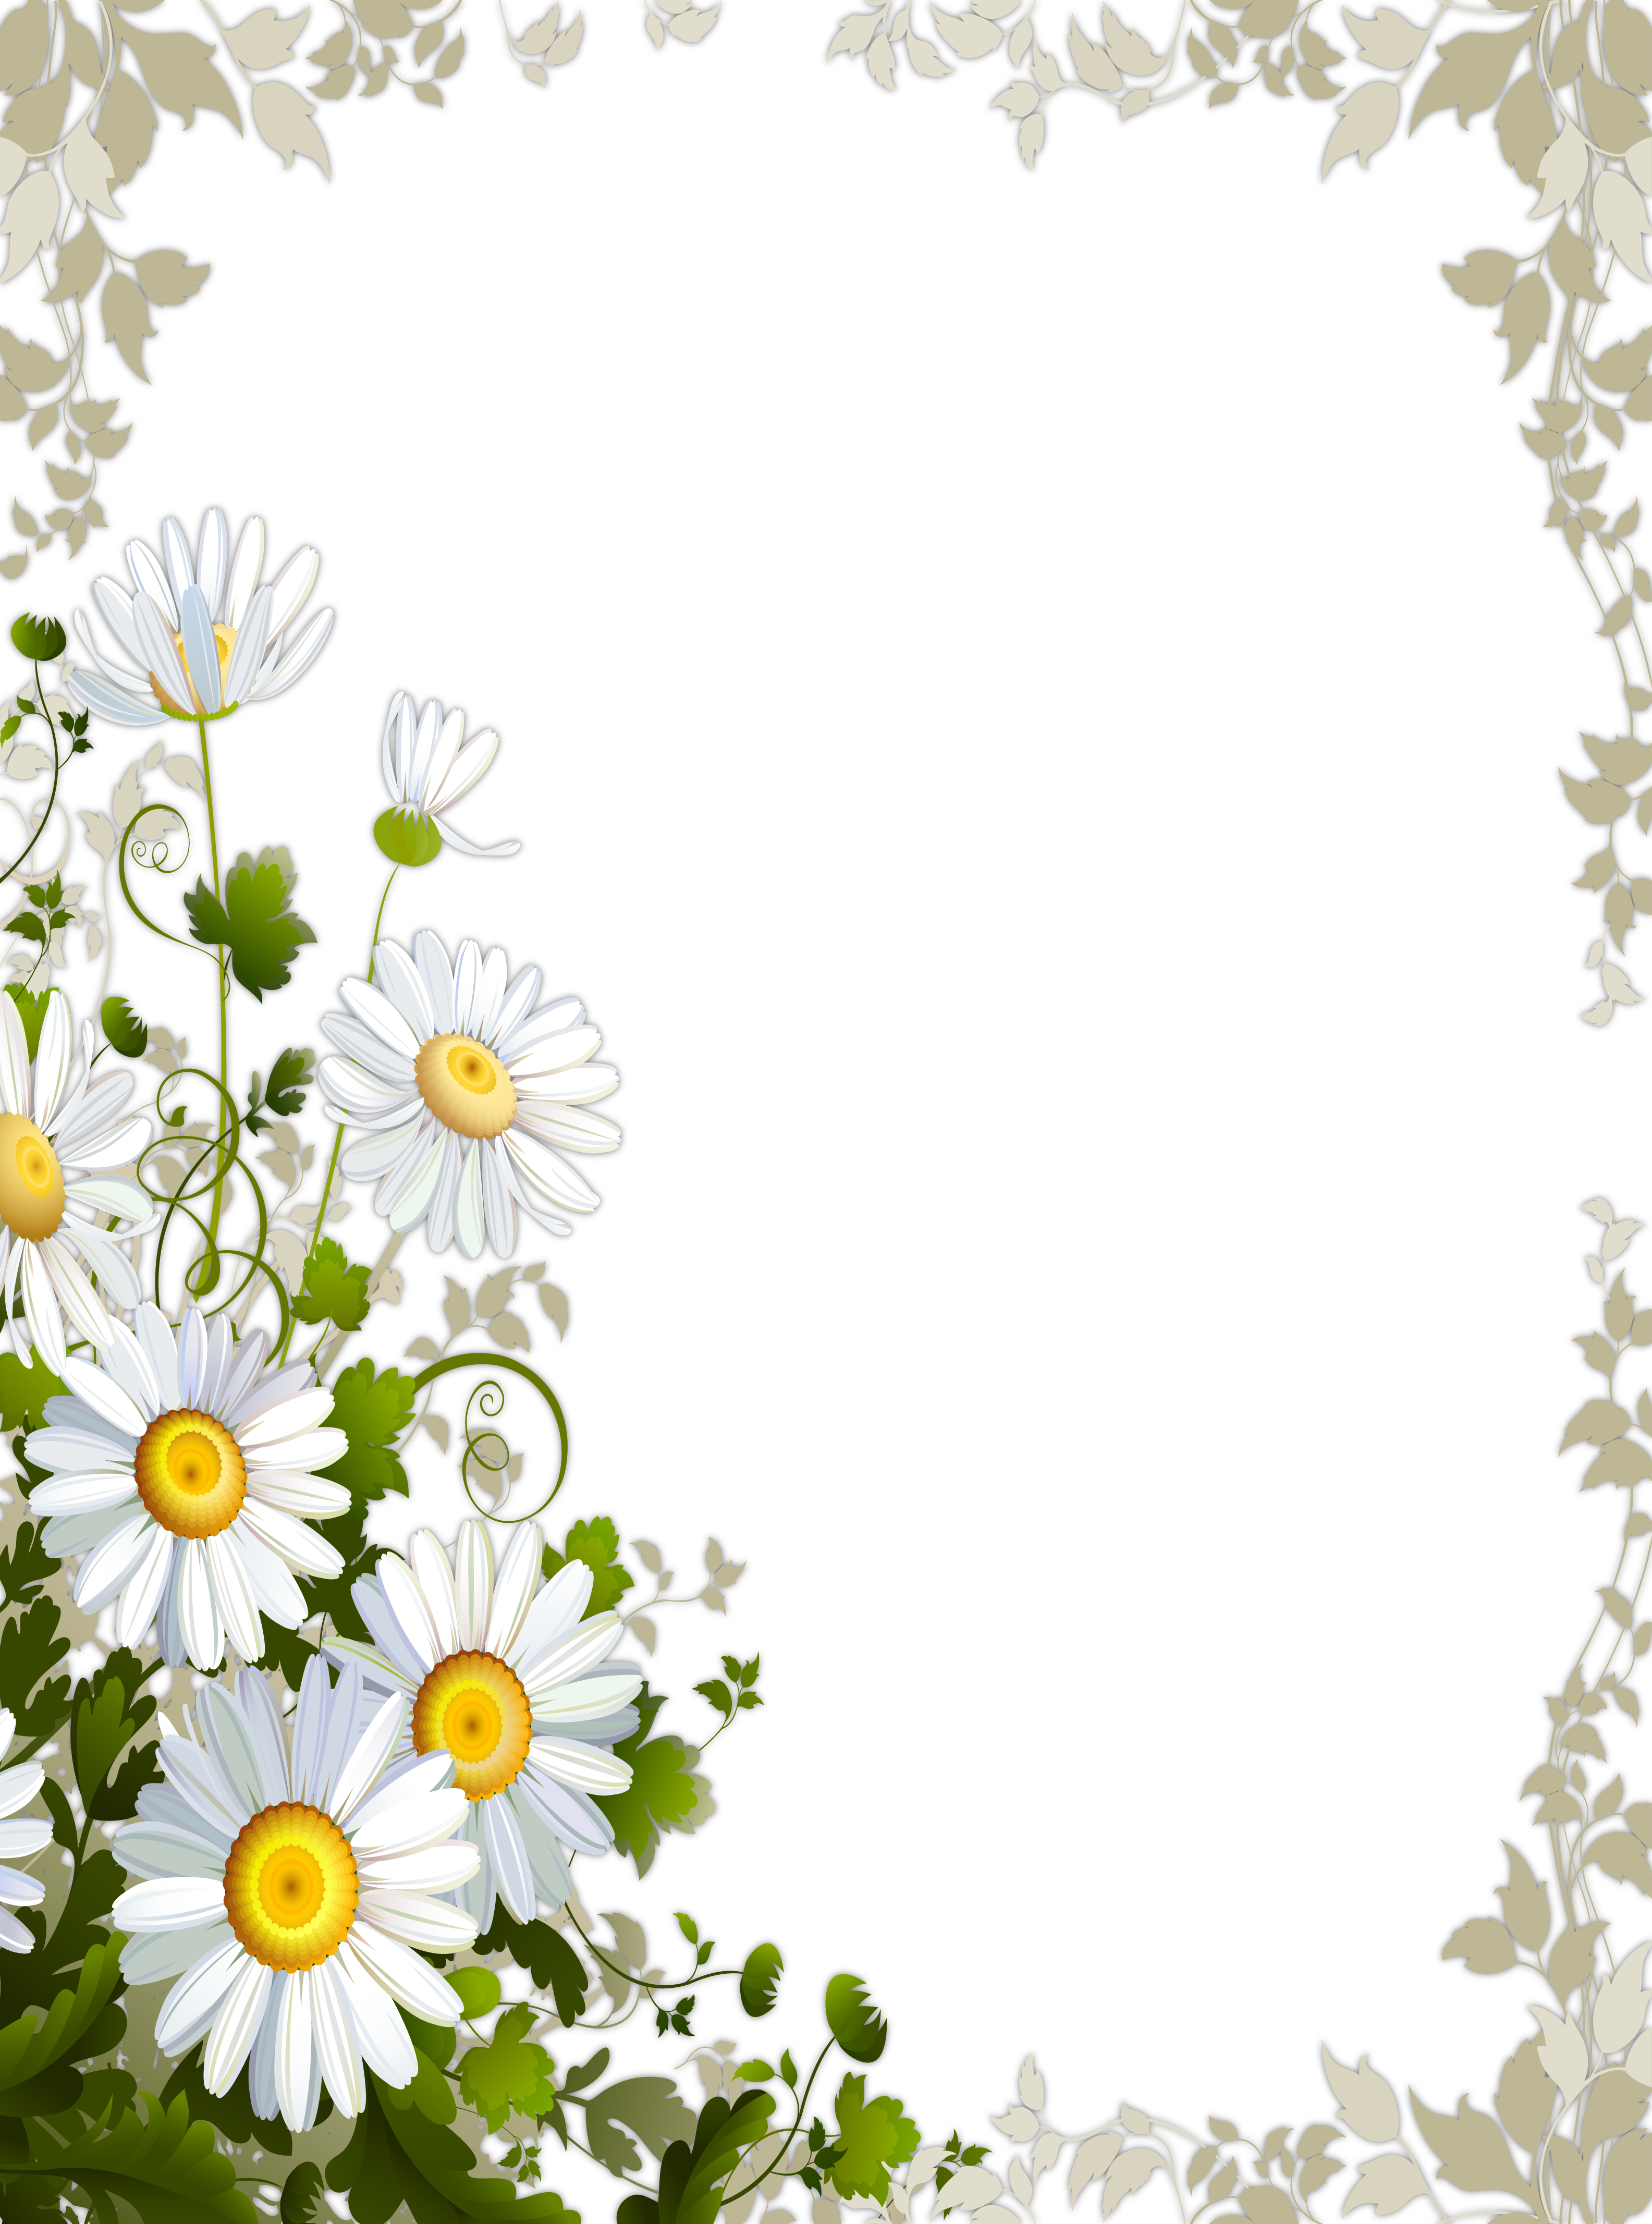 Transparent with daisies gallery. Daisy clipart frame banner free